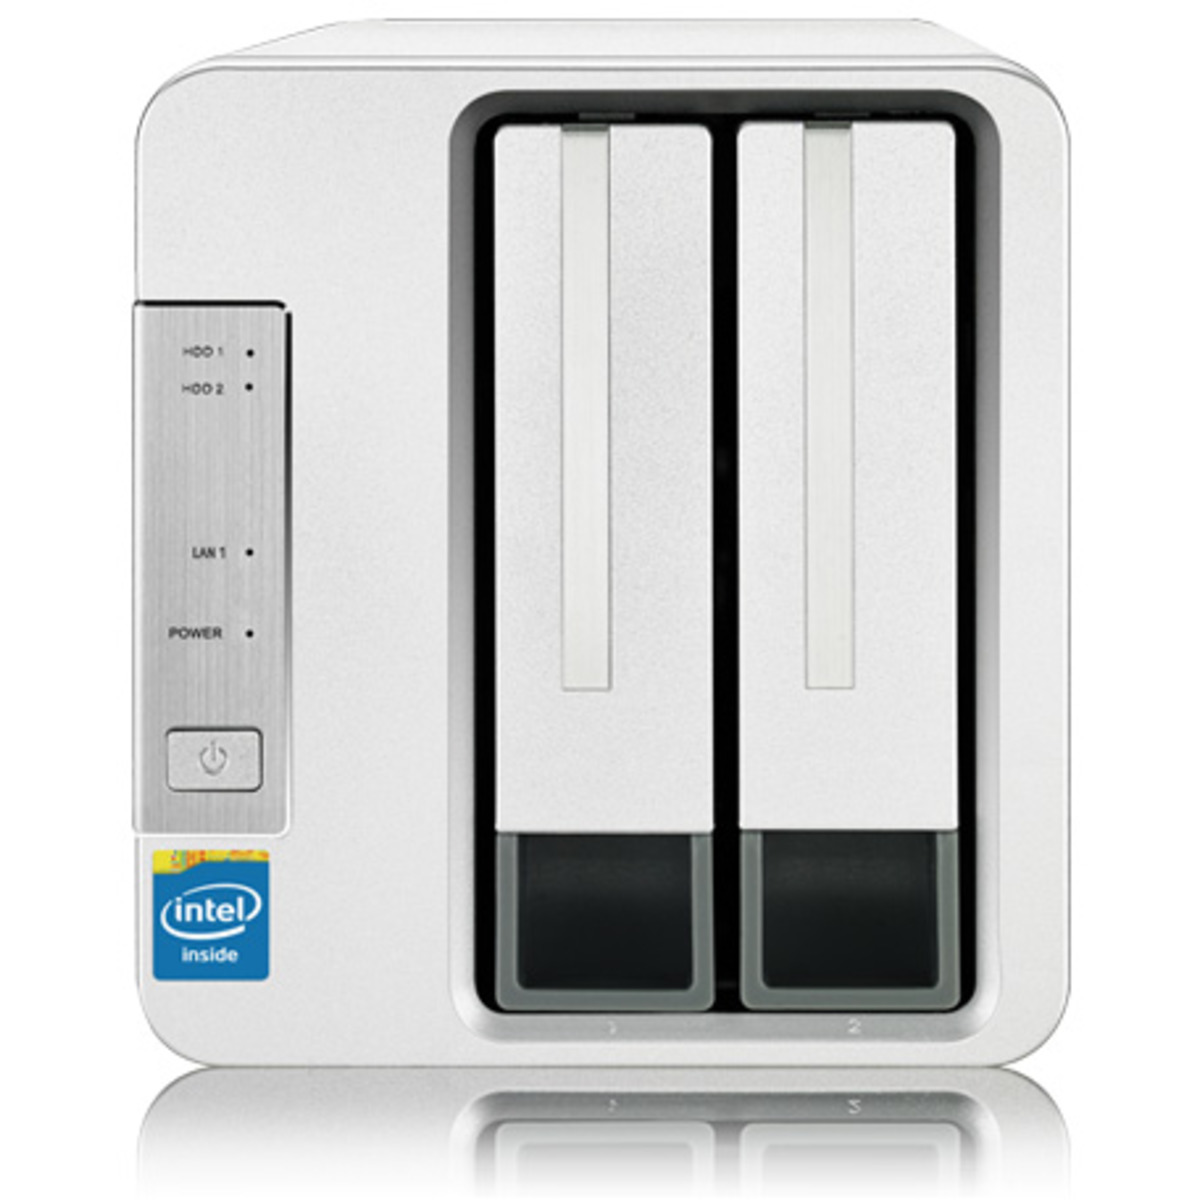 buy $657 TerraMaster F2-221 12tb Desktop NAS - Network Attached Storage Device 2x6000gb Seagate BarraCuda ST6000DM003 3.5 5400rpm SATA 6Gb/s HDD CONSUMER Class Drives Installed - Burn-In Tested - ON SALE - FREE RAM UPGRADE - nas headquarters buy network attached storage server device das new raid-5 free shipping usa holiday new year clearance sale F2-221